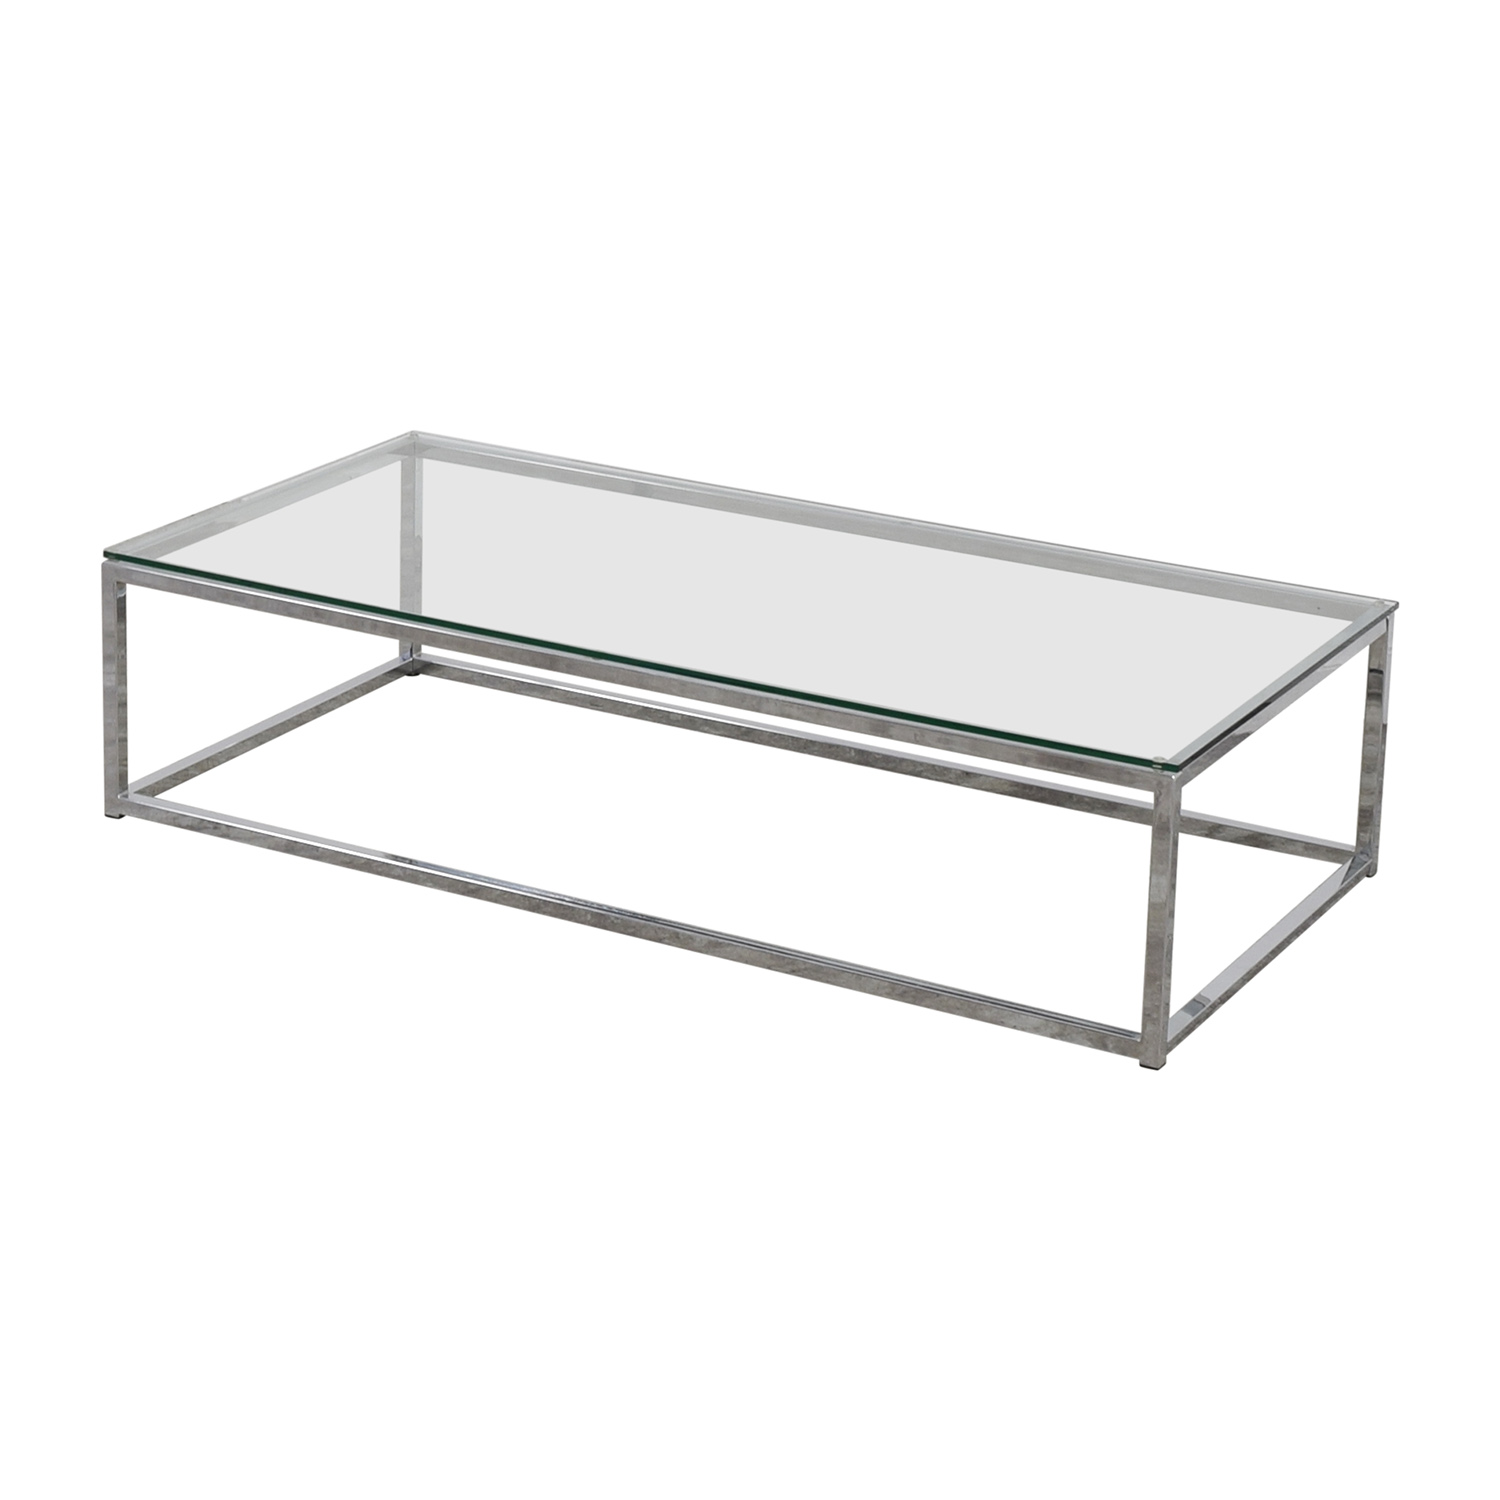 Ottoman Coffee Table Cb2: CB2 CB2 Glass And Chrome Coffee Table / Tables